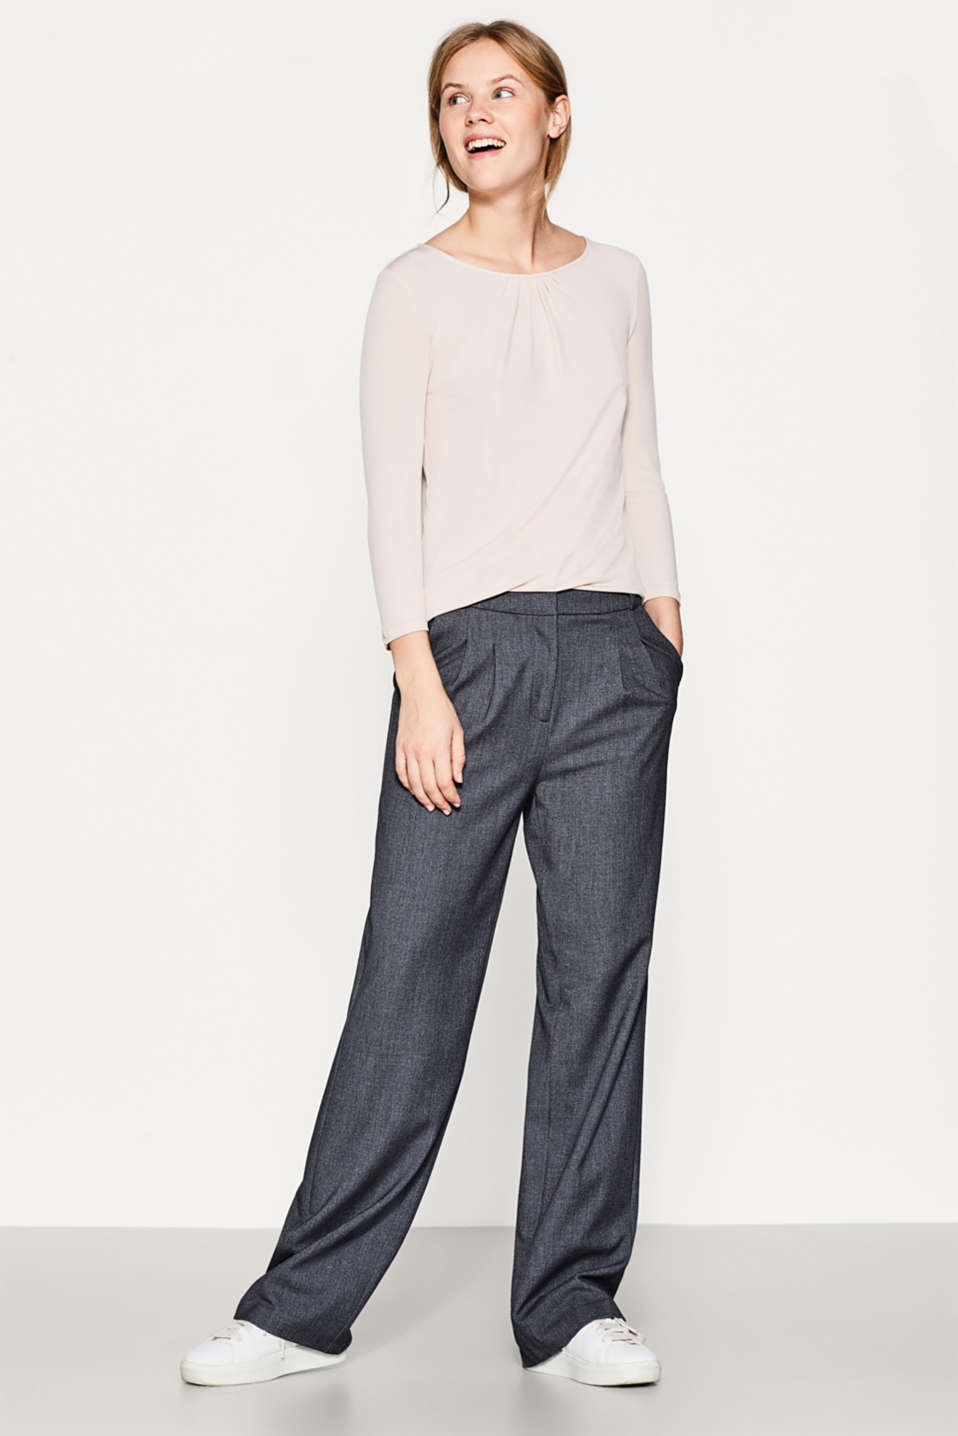 Esprit - Crêpe top with pleats and added stretch